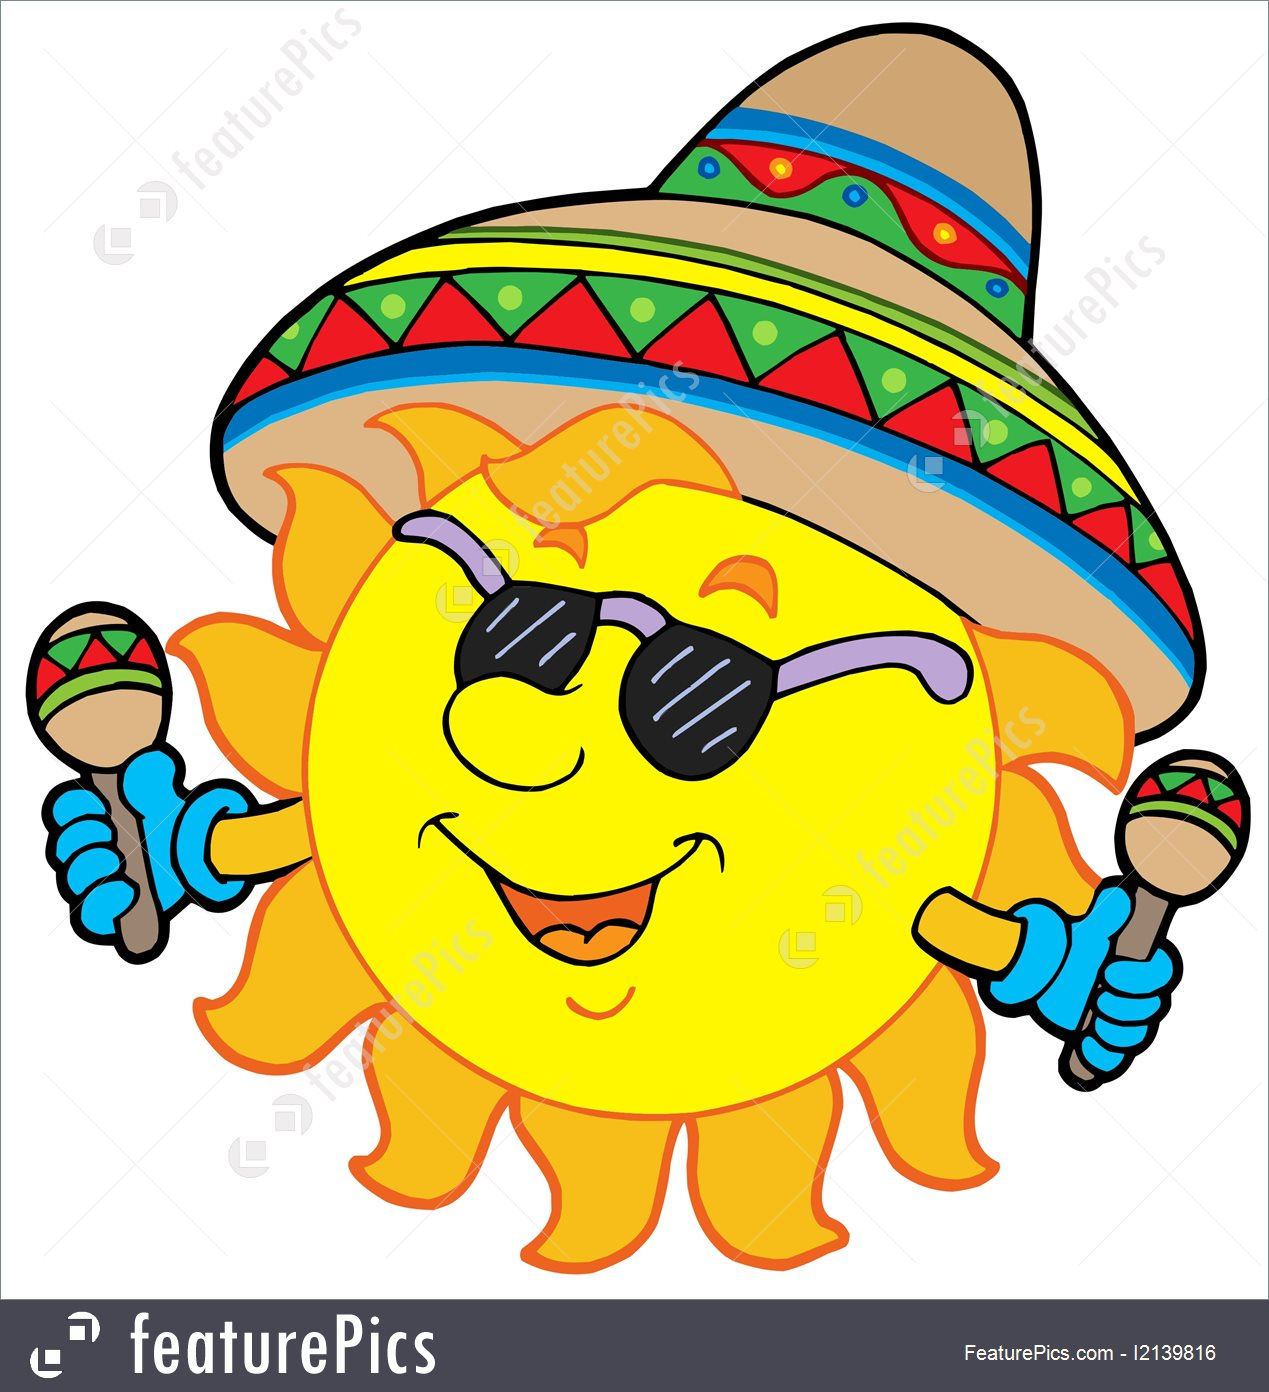 Mexican Sun Clipart   Free download best Mexican Sun Clipart on ...